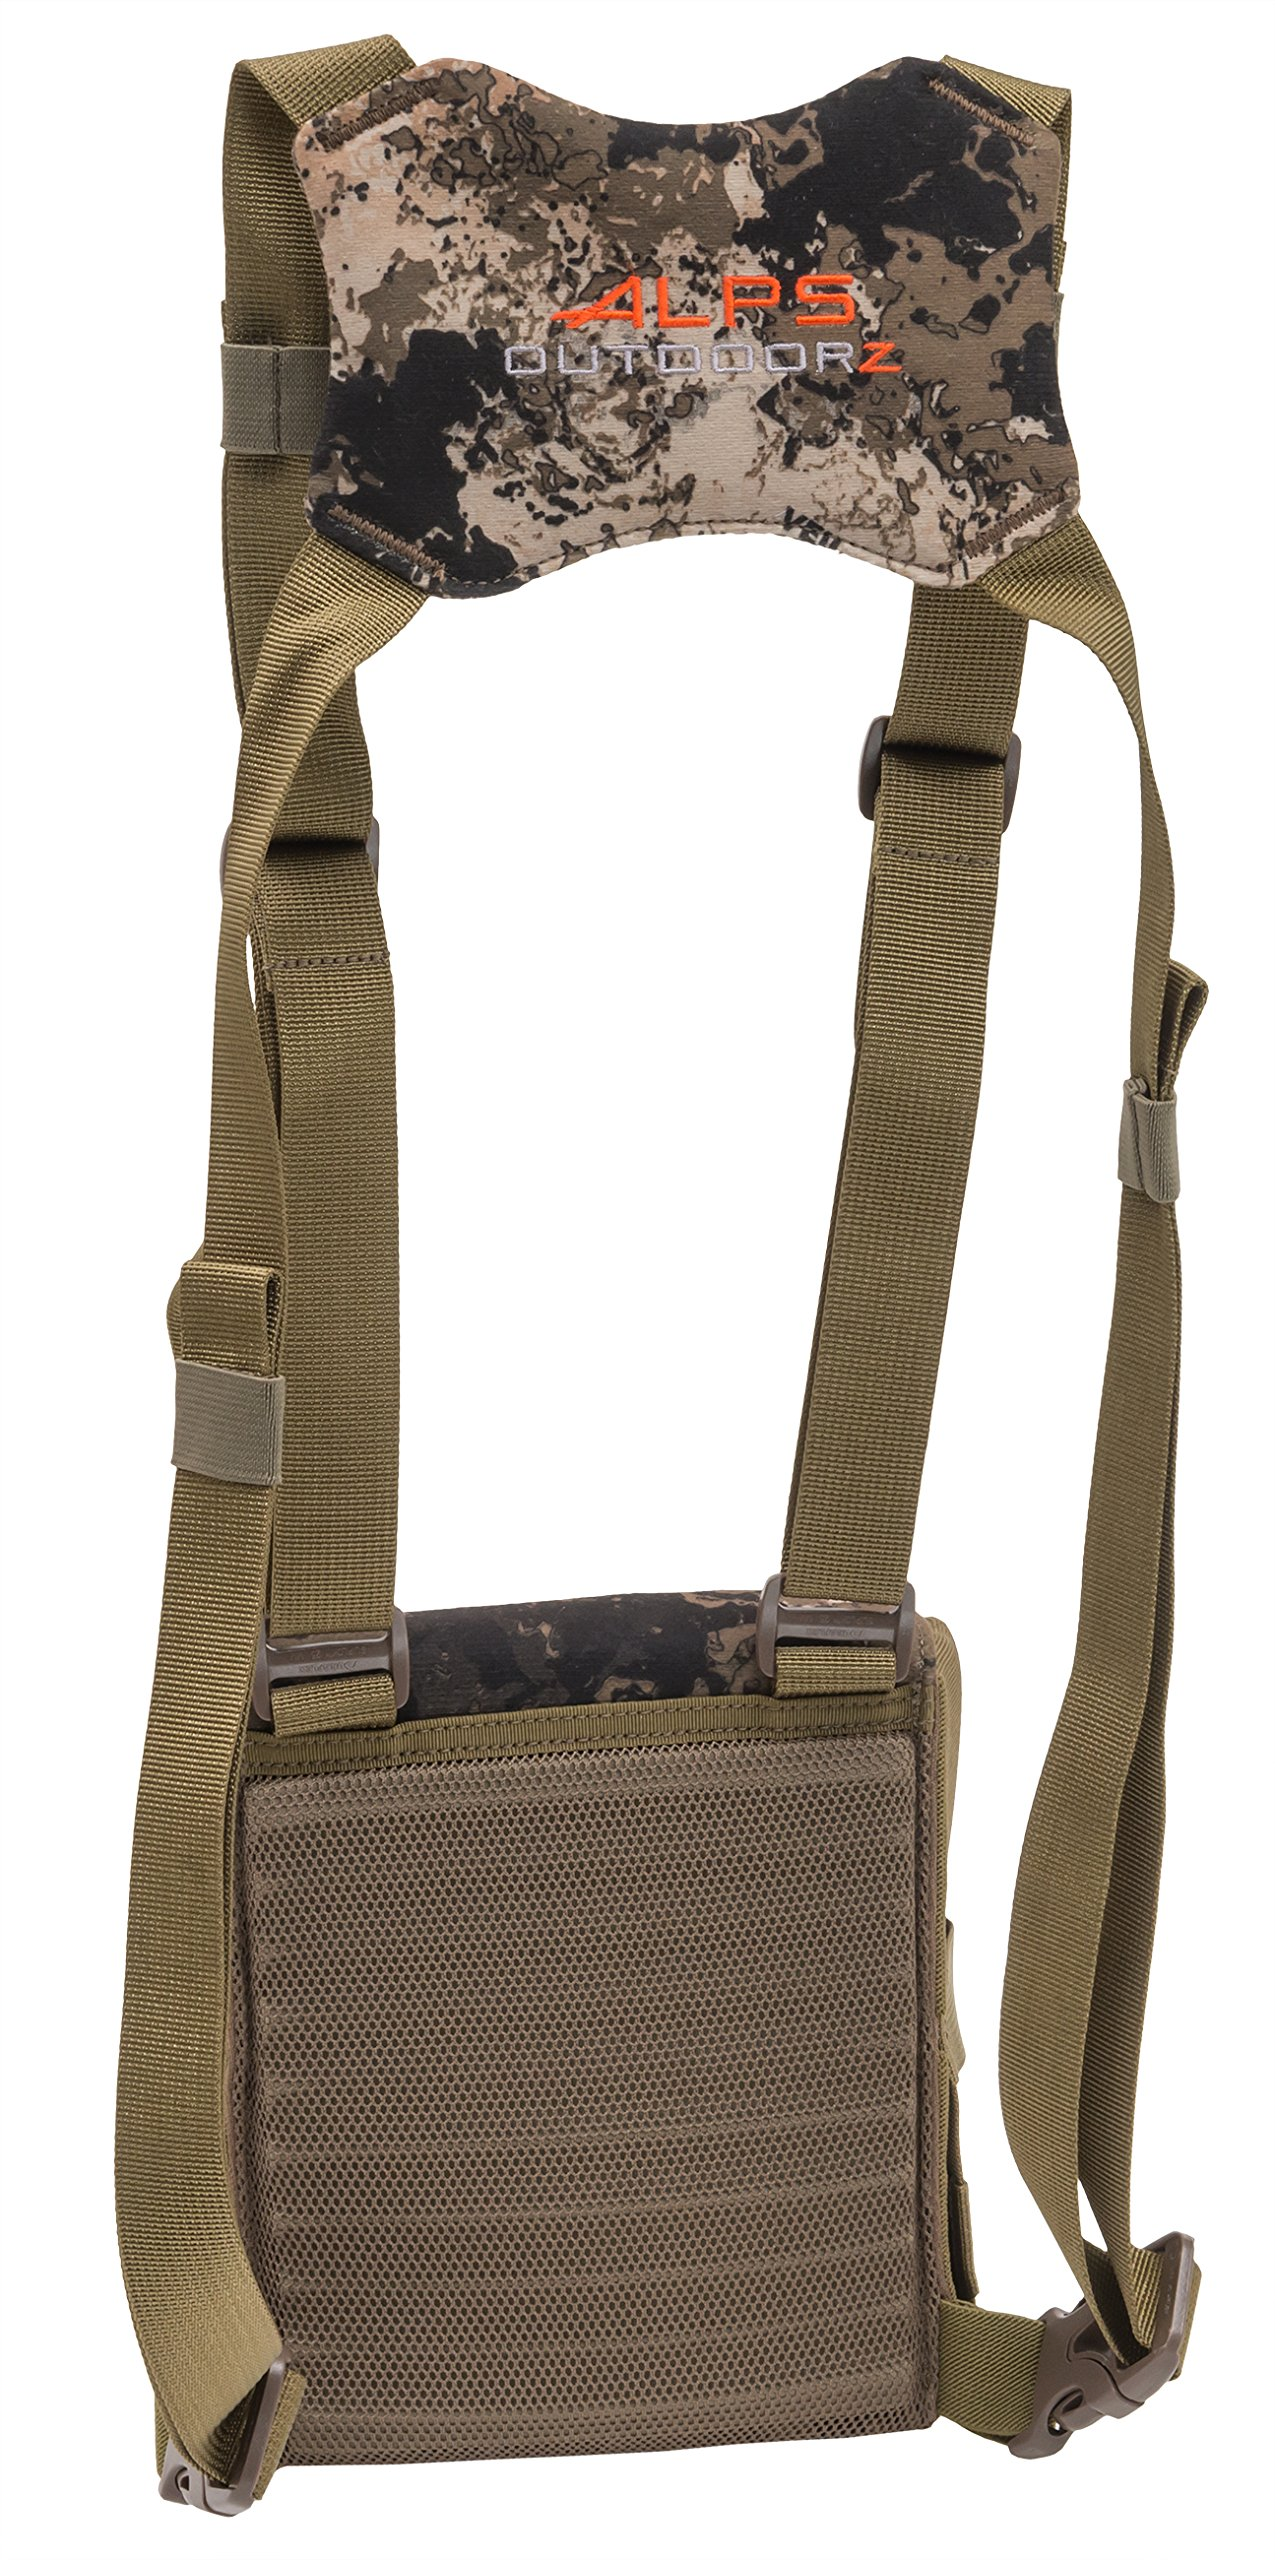 ALPS OutdoorZ Extreme Bino Harness X, Wideland by ALPS OutdoorZ (Image #2)